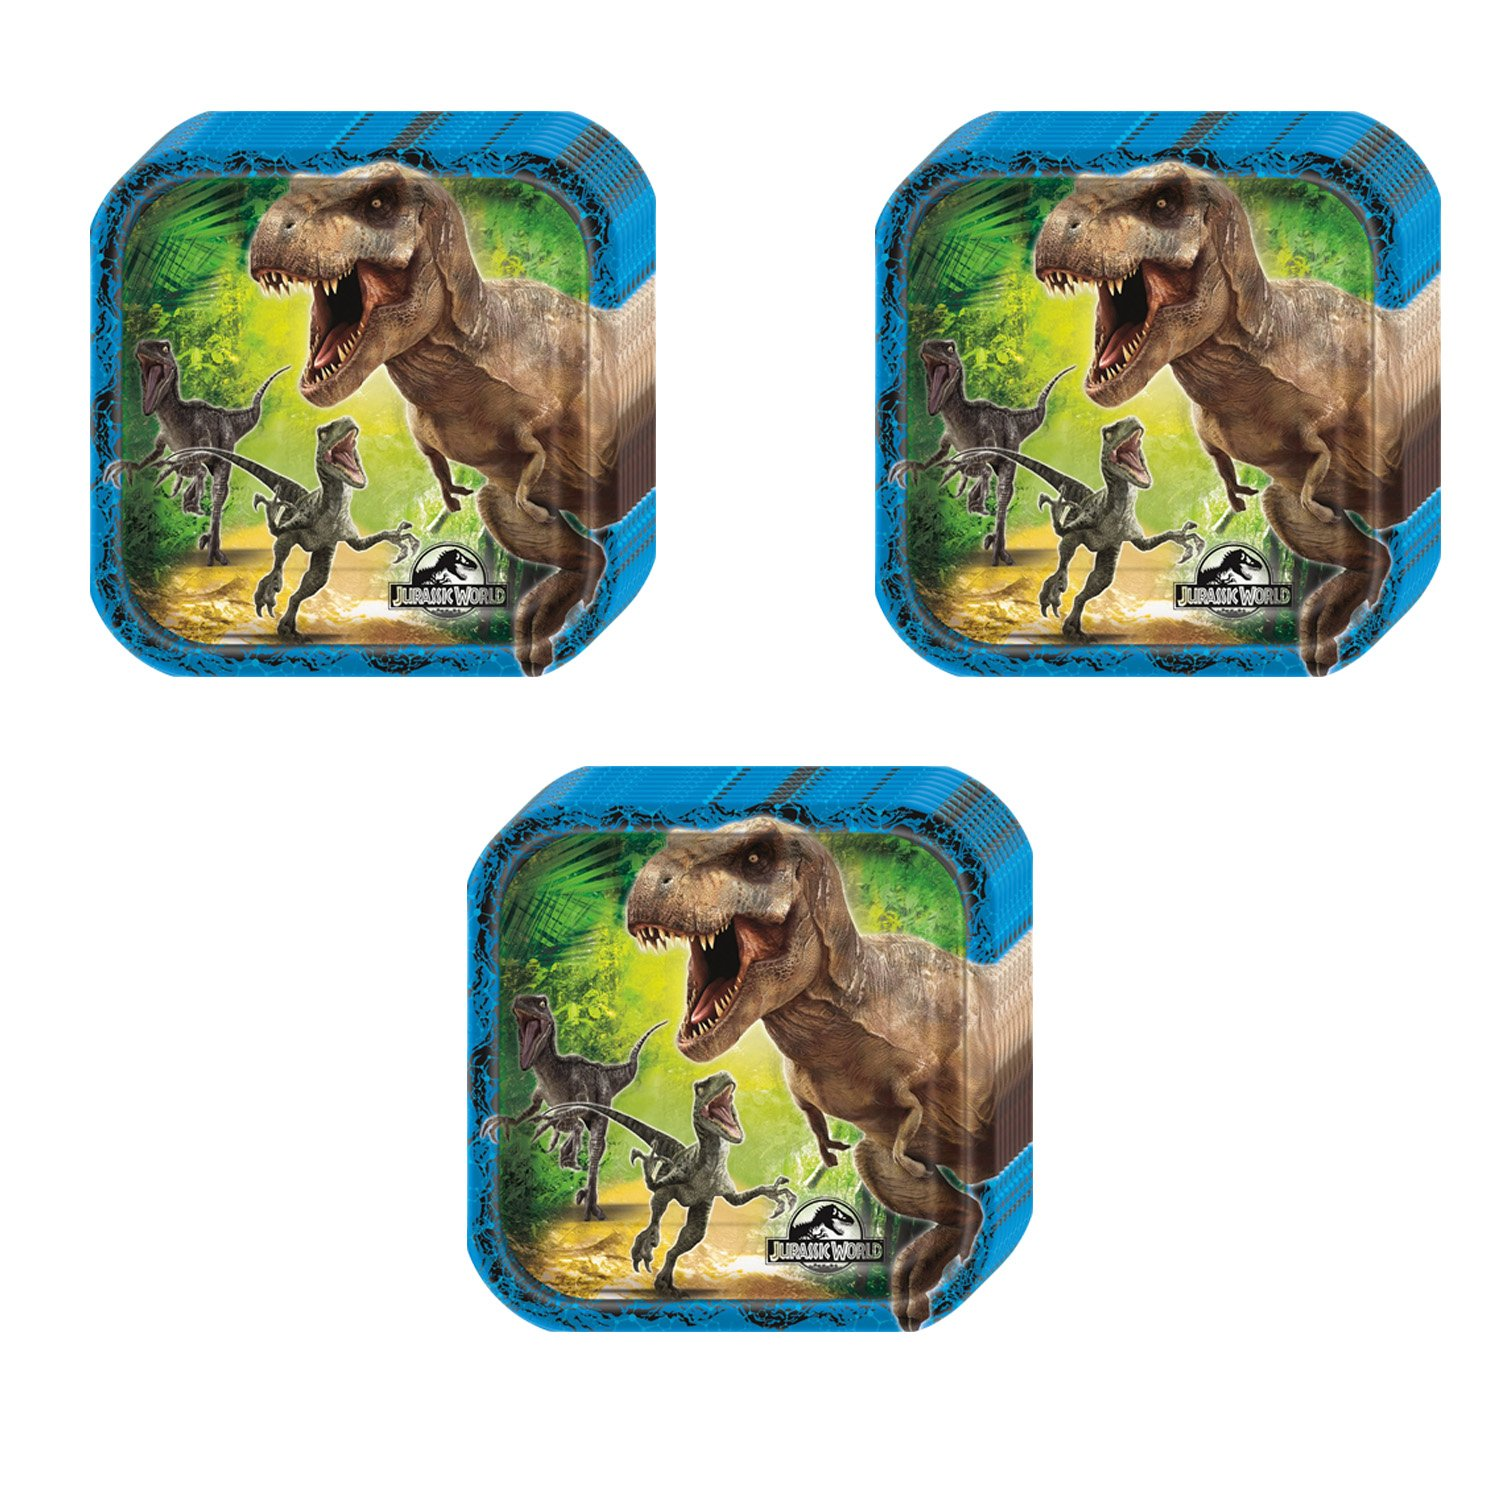 Jurassic World Party Squared Dessert Plates - 24 Pieces